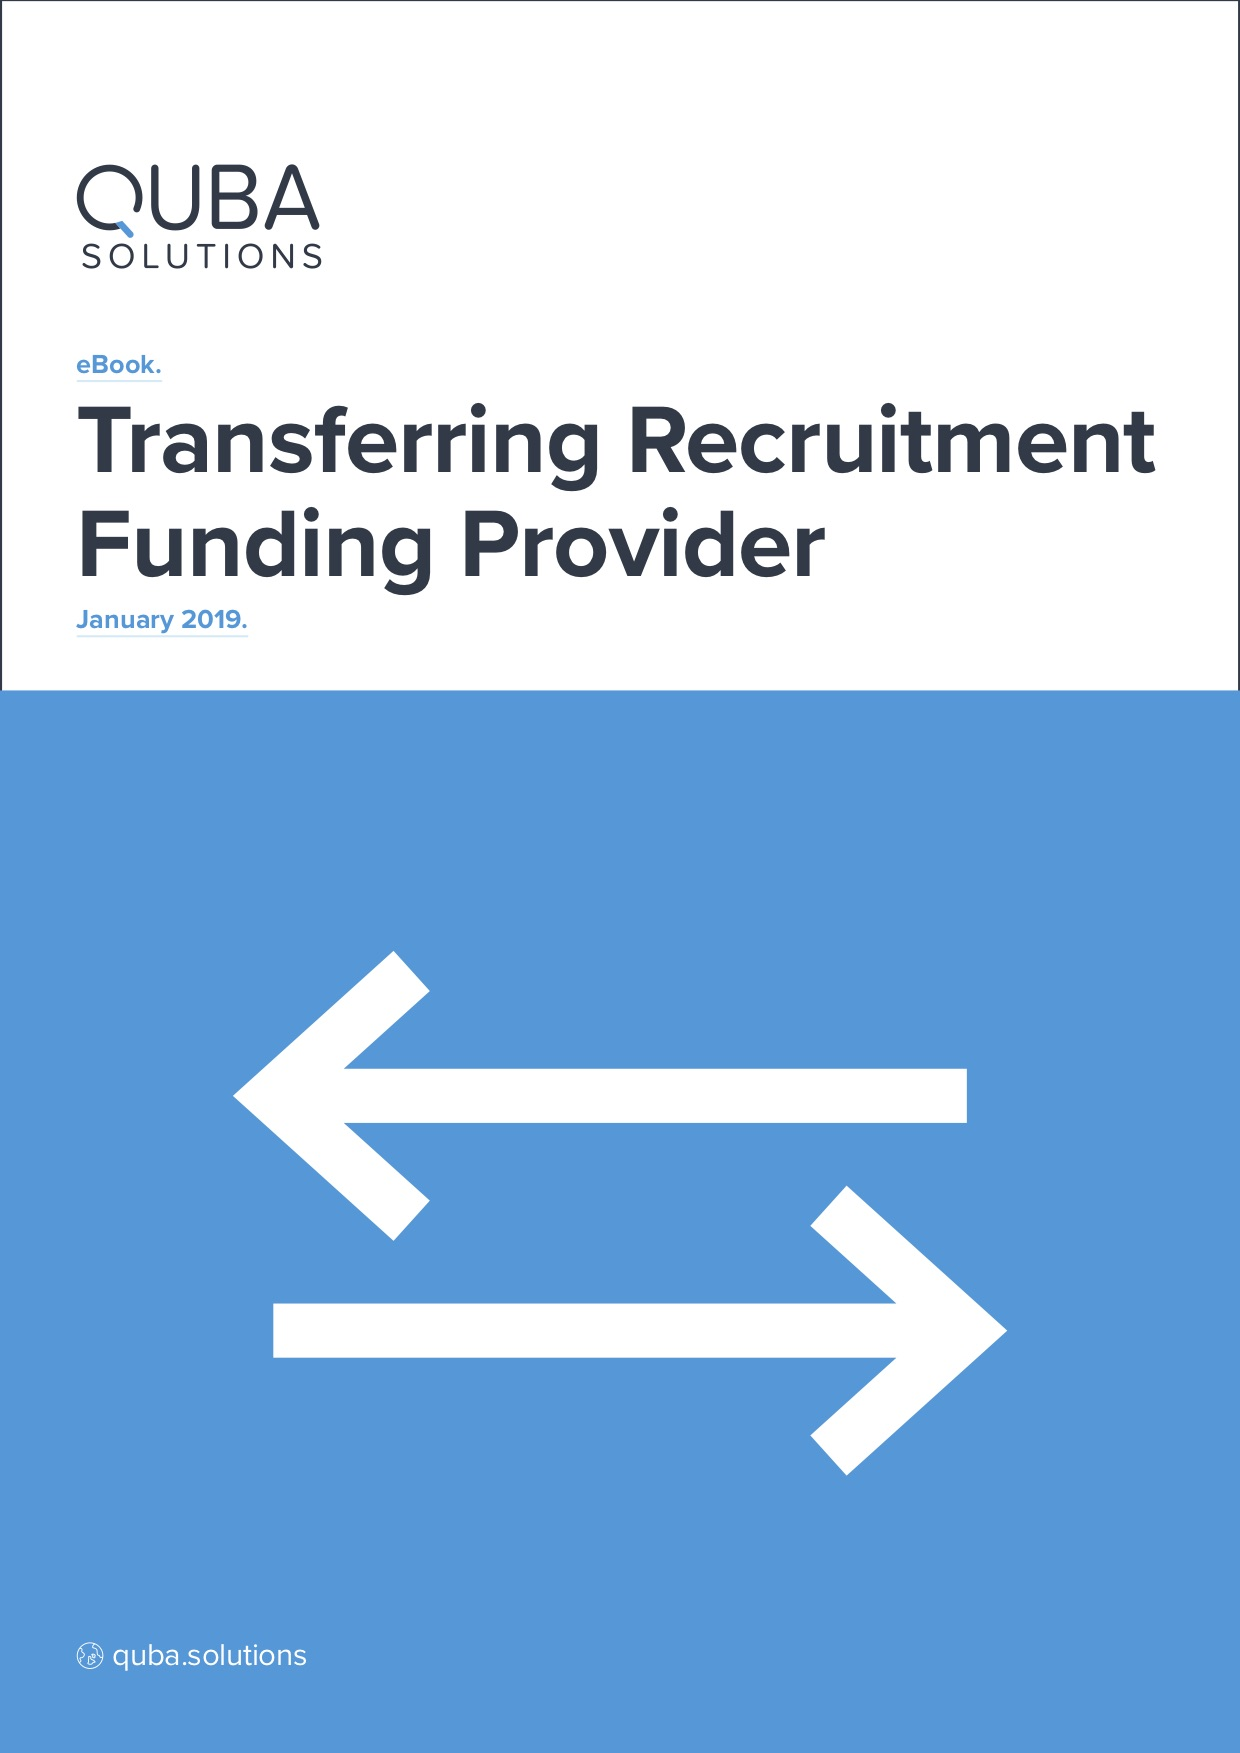 Transferring Recruitment Funding Provider (1).jpg